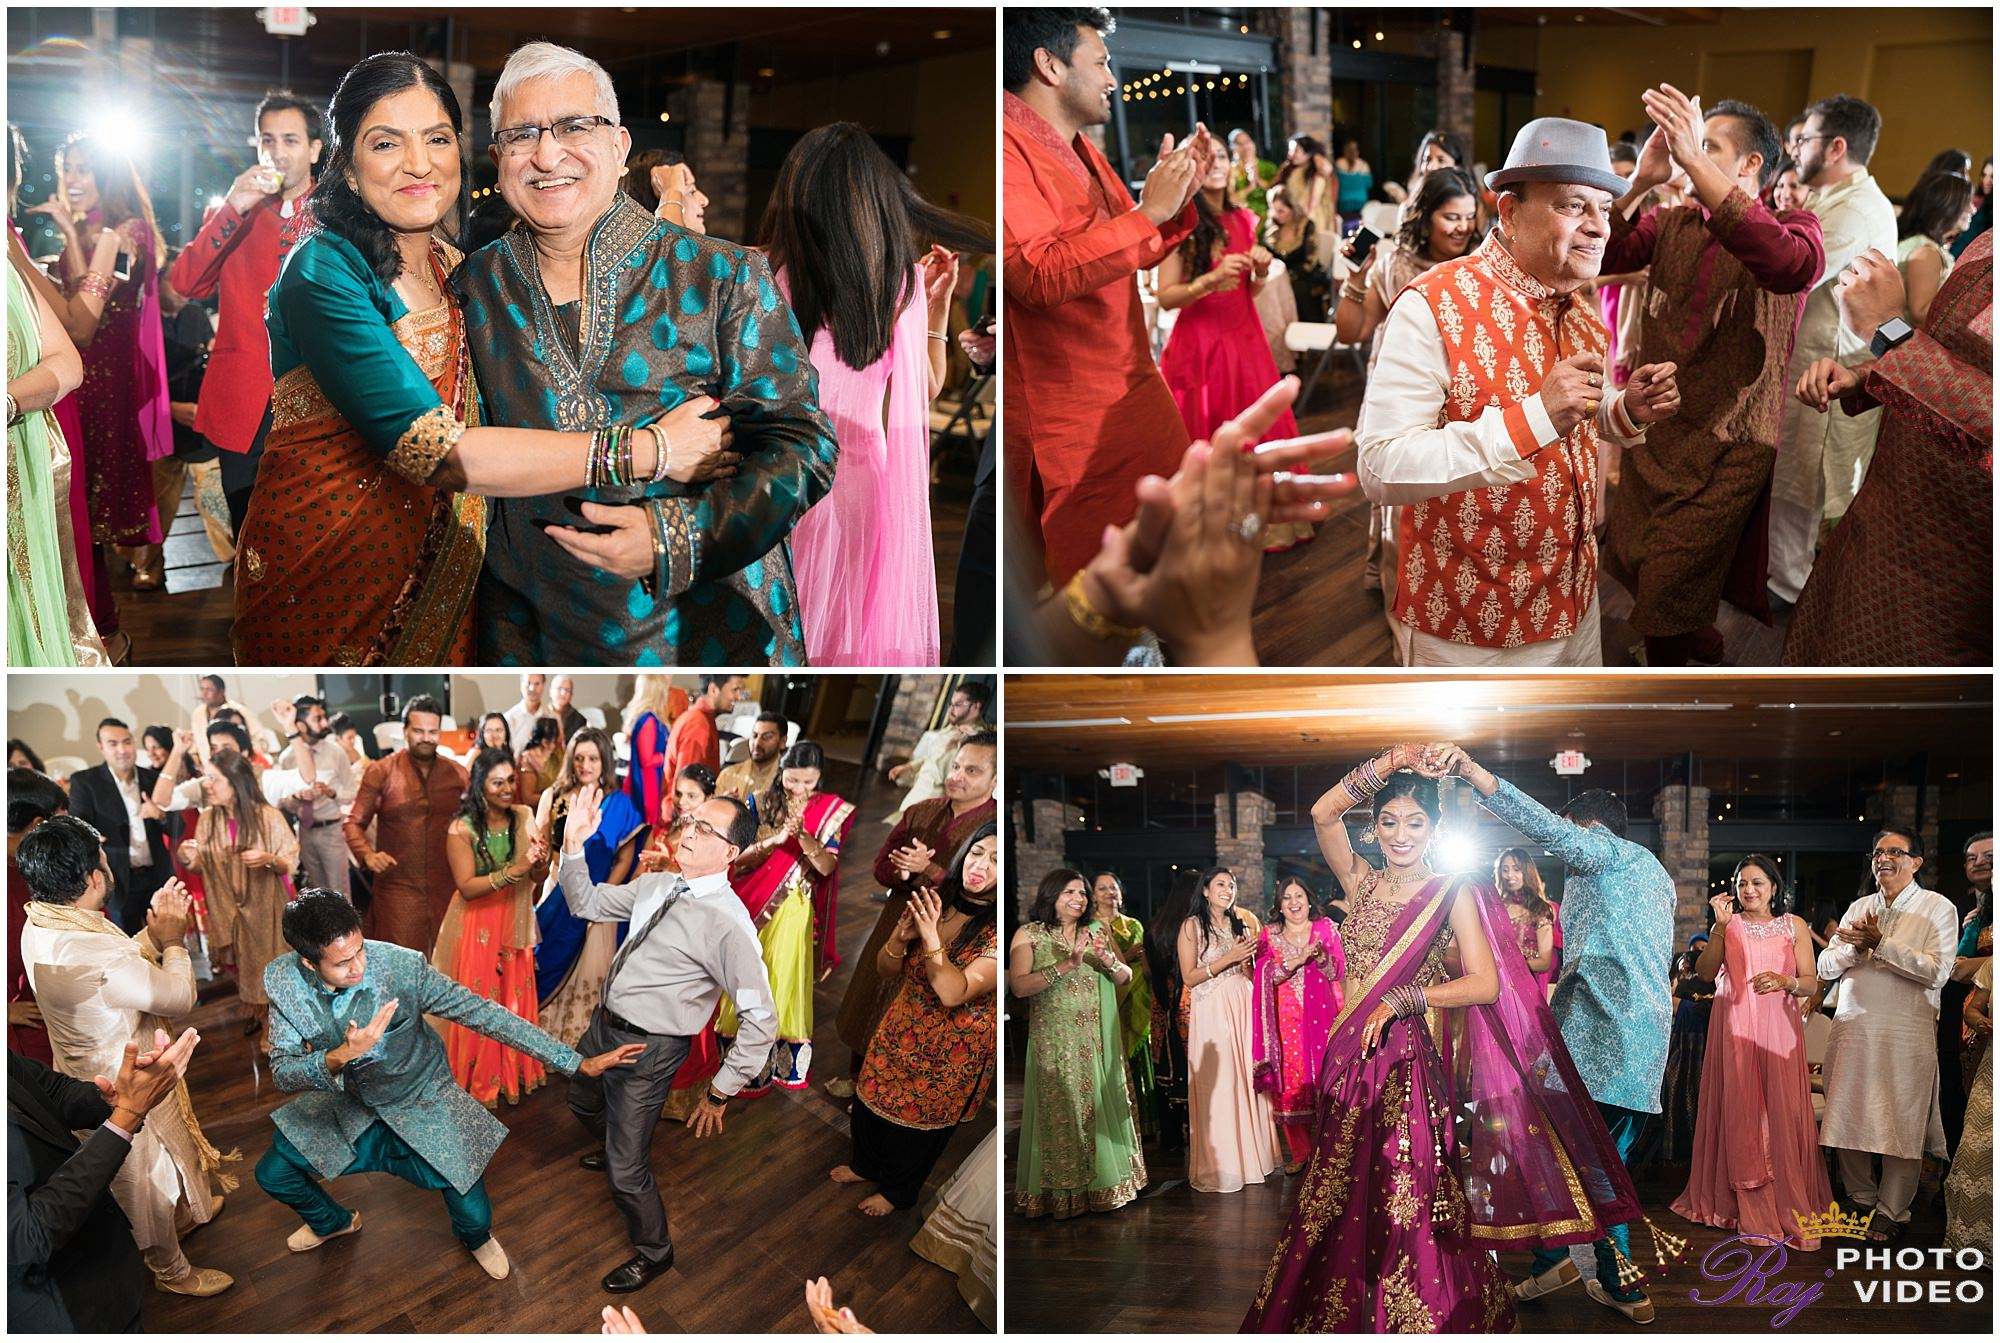 Aviano_Community_Center_Phoenix_Arizona_Indian_Wedding_Sangeet_Sapna_Shyam-7.jpg